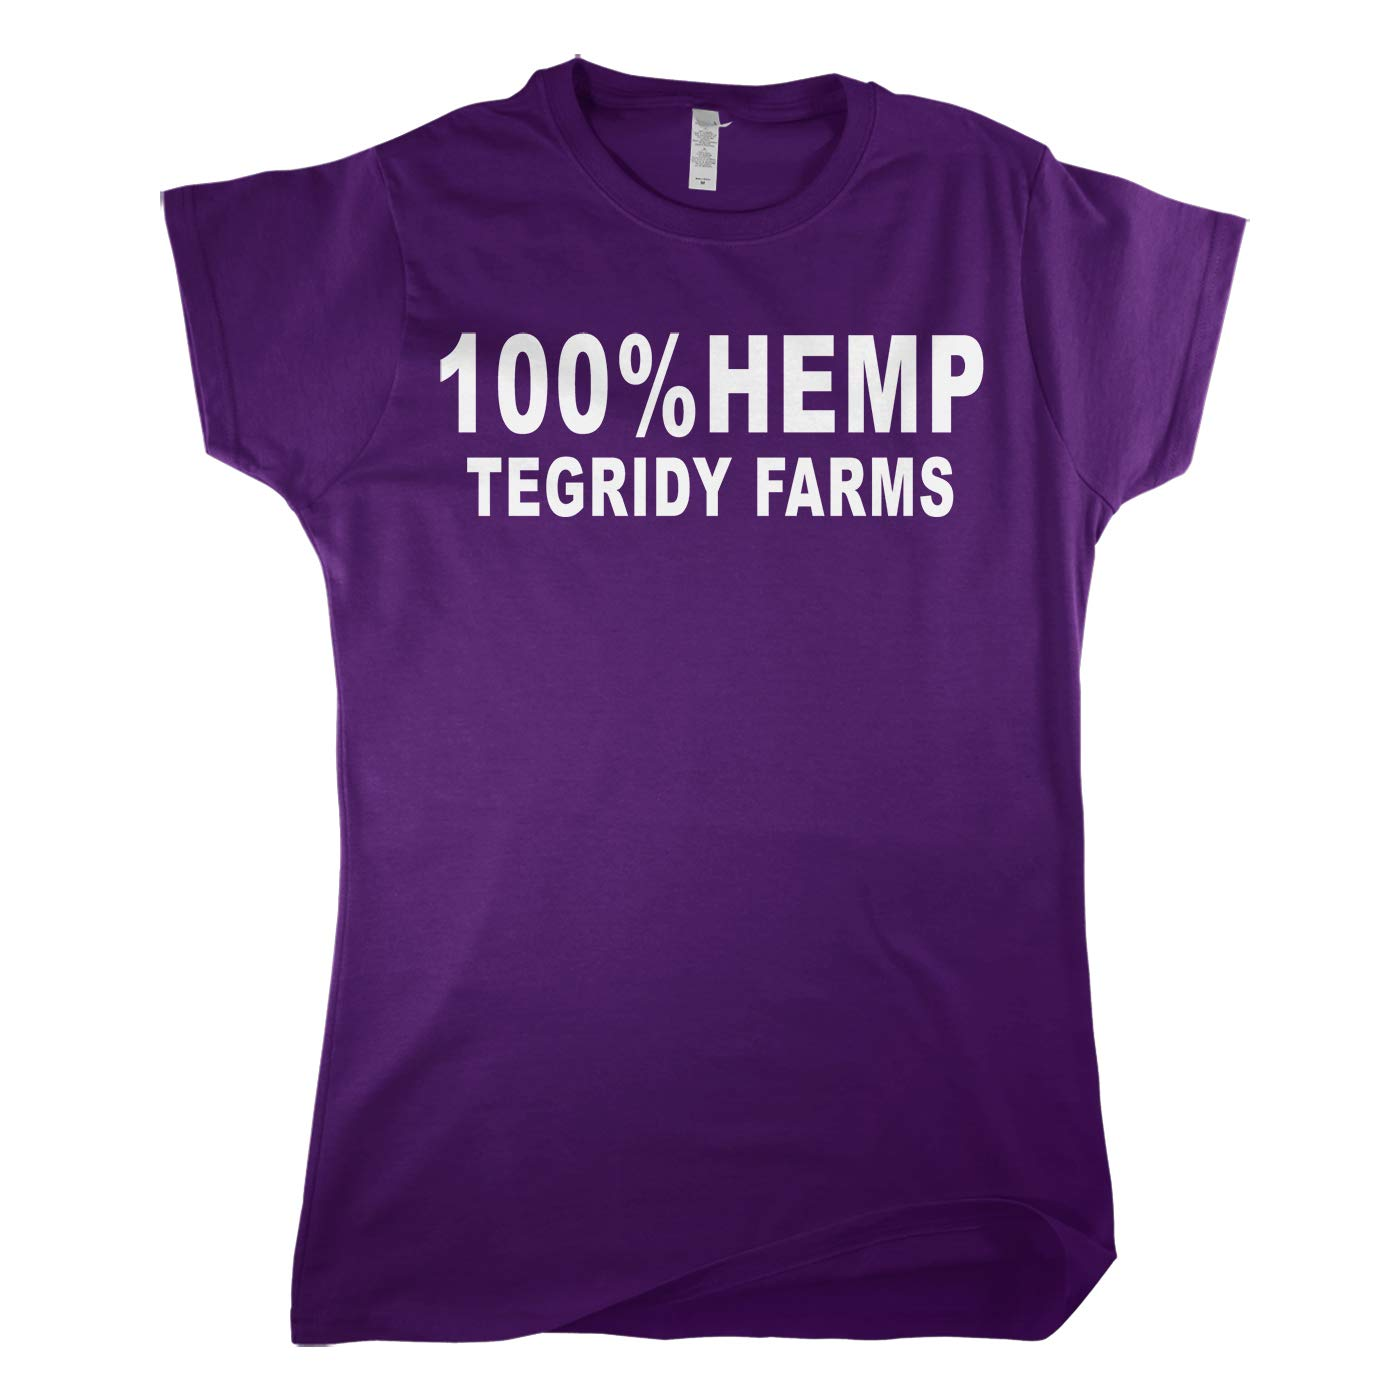 Mixtbrand Tegridy Farms Ted T Shirt 1465